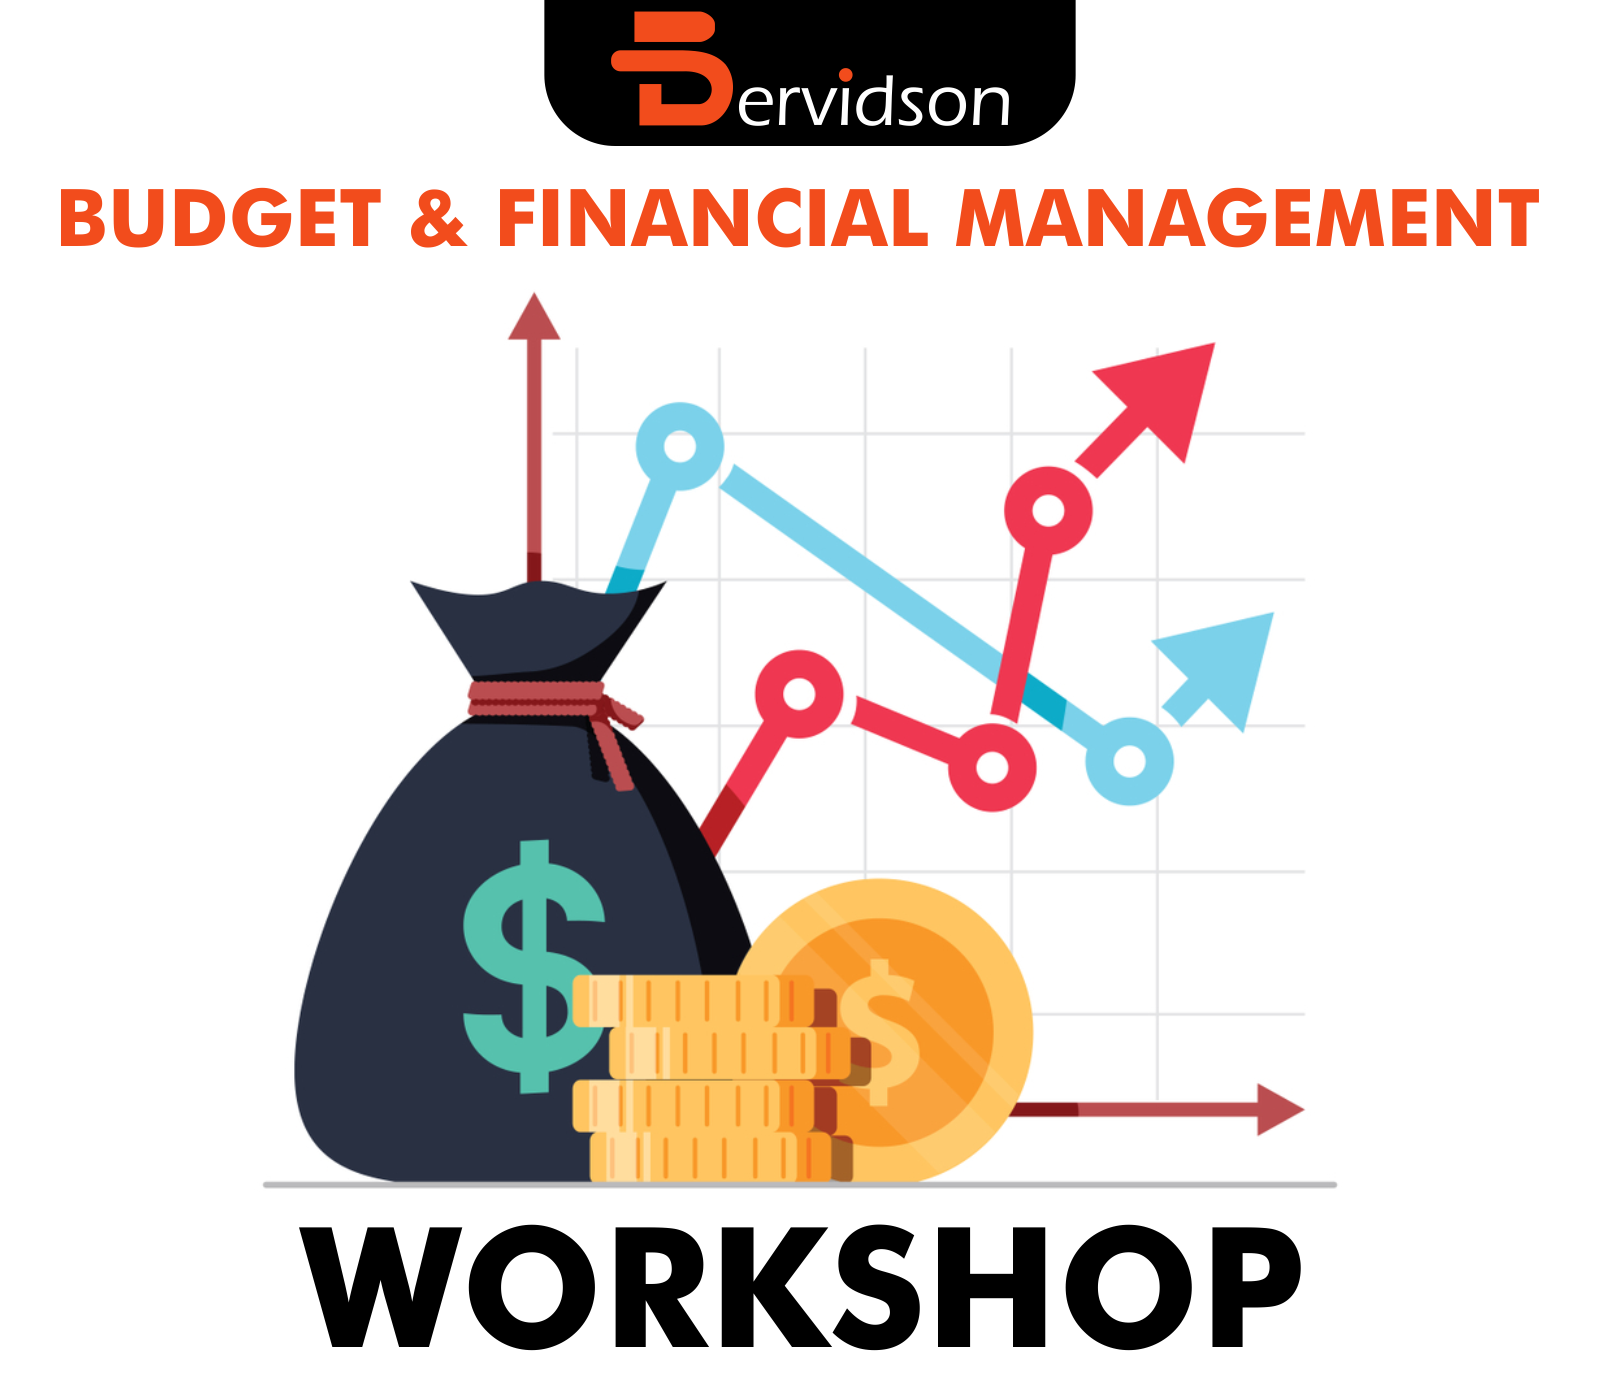 Budget & Financial Management Workshop